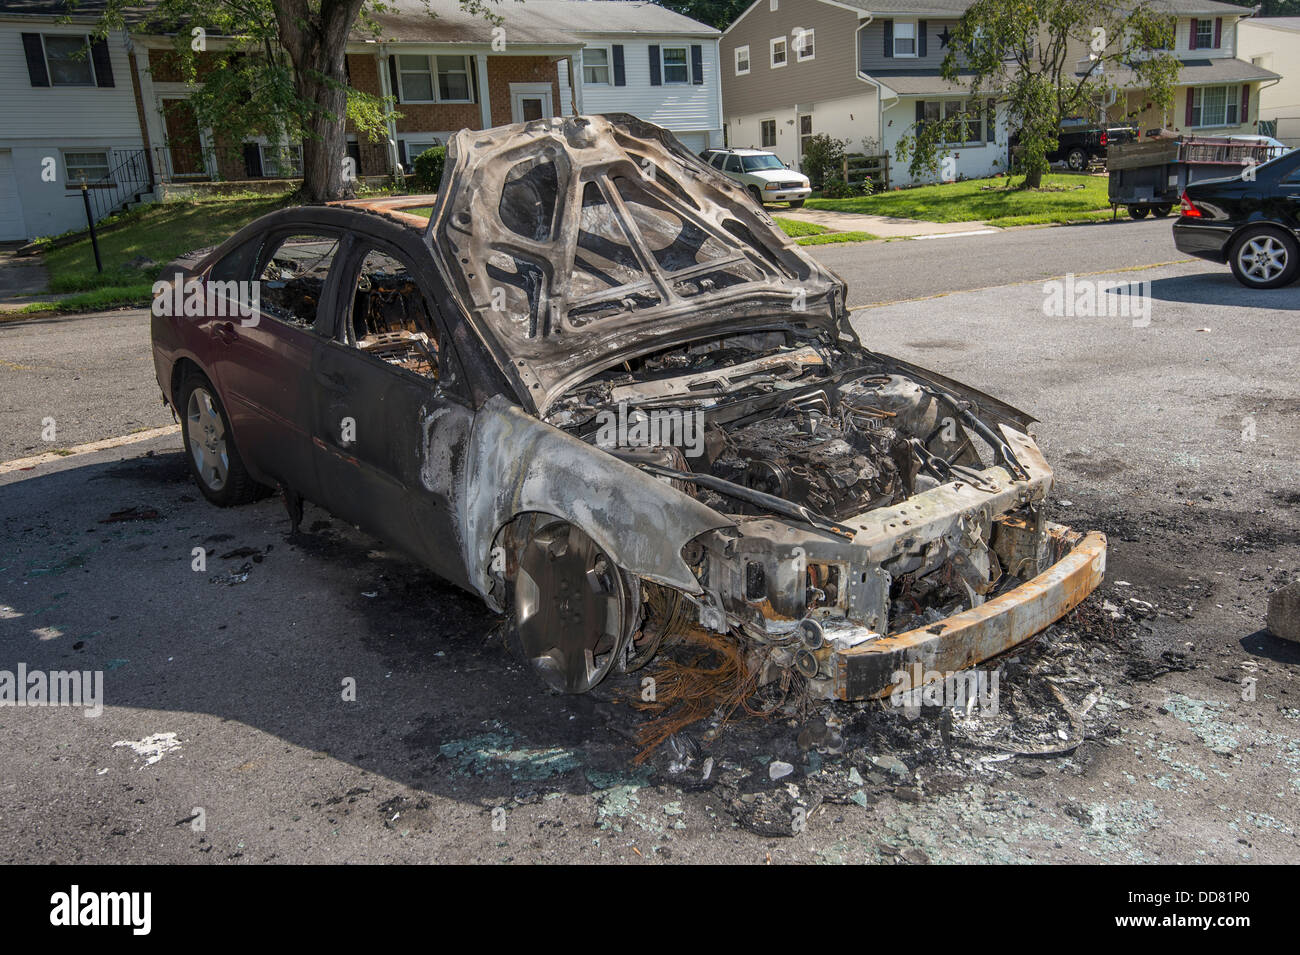 burnt car after car fire stock photo 59798648 alamy. Black Bedroom Furniture Sets. Home Design Ideas